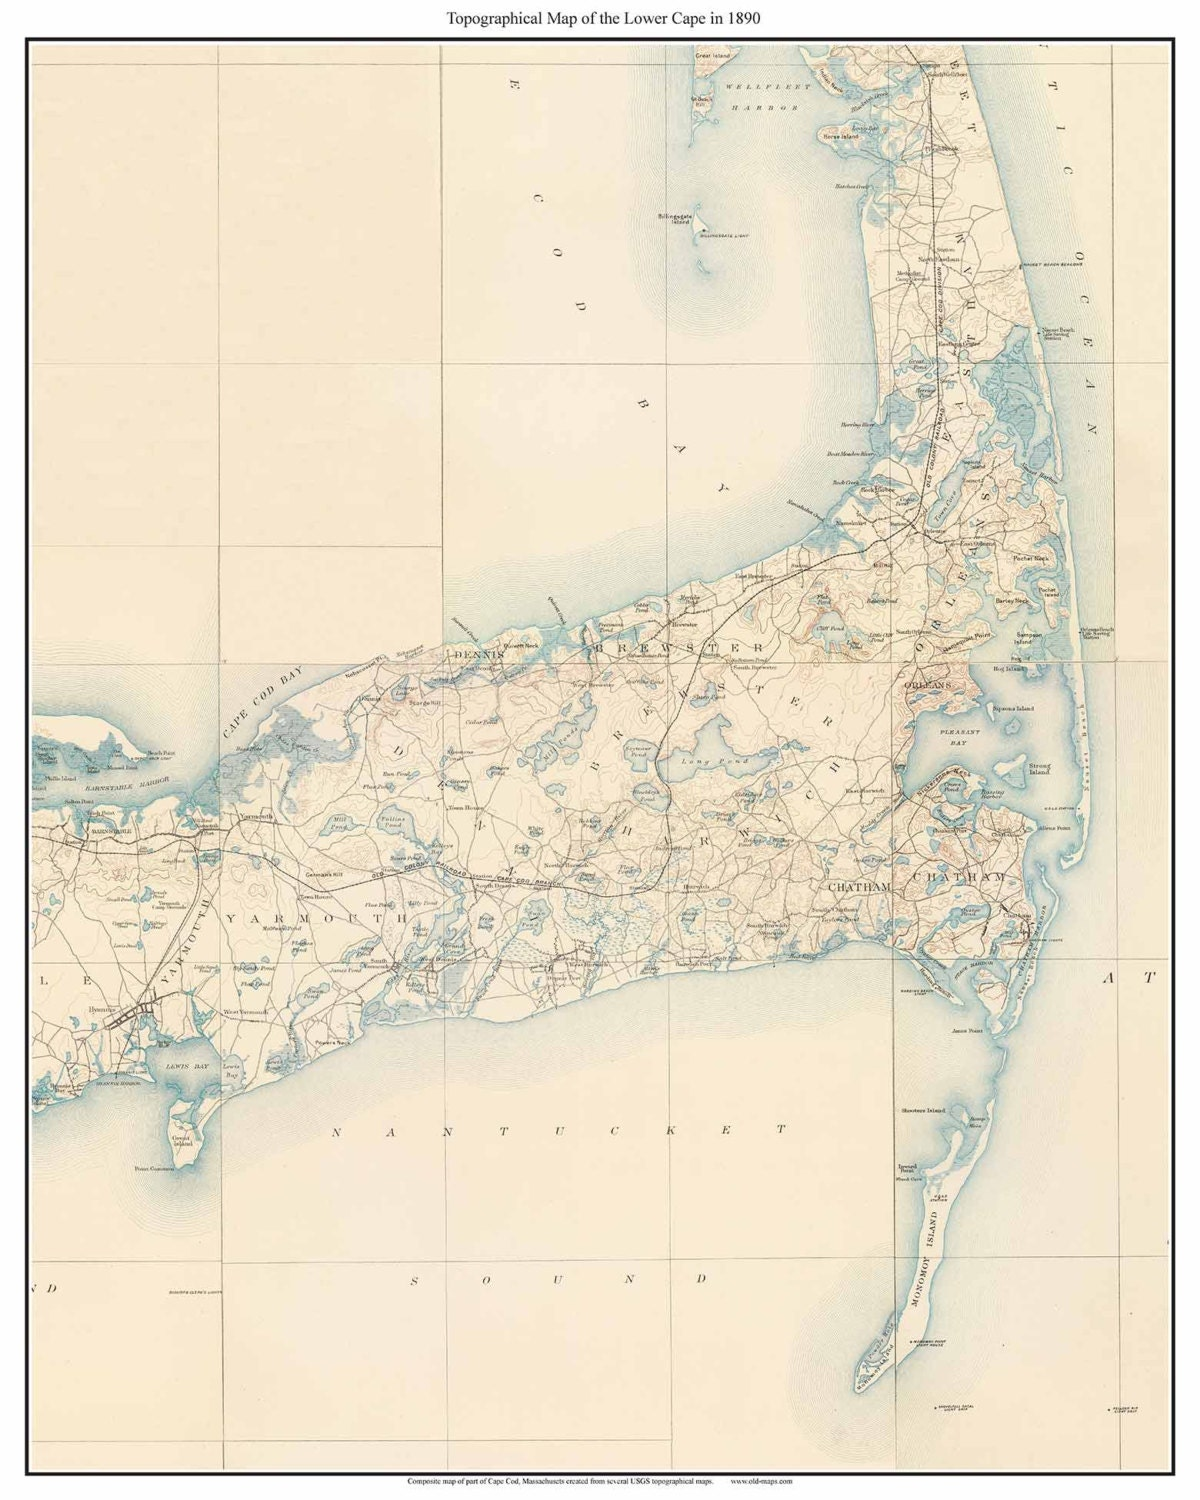 Eastham Cape Cod Map: Cape Cod Regions LOWER CAPE 1890 Old Topo Map Massachusetts